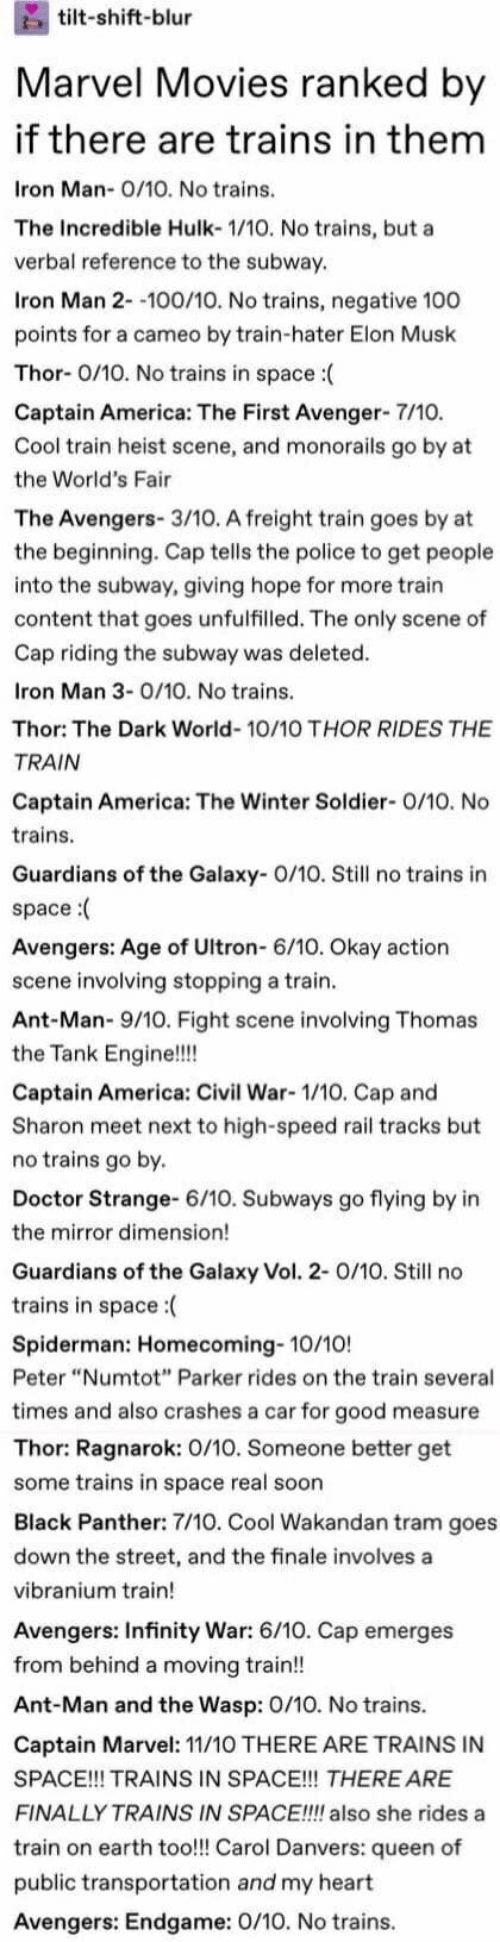 """America, Avengers Age of Ultron, and Captain America: Civil War: tilt-shift-blur  Marvel Movies ranked by  if there are trains in them  Iron Man-0/1O. No trains.  The Incredible Hulk- 1/10. No trains, but a  verbal reference to the subway  Iron Man 2--100/10. No trains, negative 100  points for a cameo by train-hater Elon Musk  Thor- 0/10. No trains in space:  Captain America: The First Avenger- 7/10.  Cool train heist scene, and monorails go by at  the World's Fair  The Avengers- 3/10. A freight train goes by at  the beginning. Cap tells the police to get people  into the subway, giving hope for more train  content that goes unfulfilled. The only scene of  Cap riding the subway was deleted  Iron Man 3-O/10. No trains.  Thor: The Dark World- 10/10 THOR RIDES THE  TRAIN  Captain America: The Winter Soldier- 0/10. No  trains  Guardians of the Galaxy- O/10. Still no trains in  space:  Avengers: Age of Ultron- 6/10. Okay action  scene involving stopping a train  Ant-Man- 9/10. Fight scene involving Thomas  the Tank Engine!!!!  Captain America: Civil War- 1/10. Cap and  Sharon meet next to high-speed rail tracks but  no trains go by.  Doctor Strange- 6/10. Subways go flying by in  the mirror dimension!  Guardians of the Galaxy Vol. 2- 0/10. Still no  trains in space:  Spiderman: Homecoming- 10/10!  Peter """"Numtot"""" Parker rides on the train several  times and also crashes a car for good measure  Thor: Ragnarok: 0/10. Someone better get  some trains in space real soon  Black Panther: 7/10. Cool Wakandan tram goes  down the street, and the finale involves a  vibranium train!  Avengers: Infinity War: 6/10. Cap emerges  from behind a moving train!!  Ant-Man and the Wasp: 0/10. No trains.  Captain Marvel: 11/10 THERE ARE TRAINS IN  SPACE!!! TRAINS IN SPACE!! THERE ARE  FINALLY TRAINS IN SPACE!!!! also she rides a  train on earth too!!! Carol Danvers: queen of  public transportation and my heart  Avengers: Endgame: 0/10. No trains."""